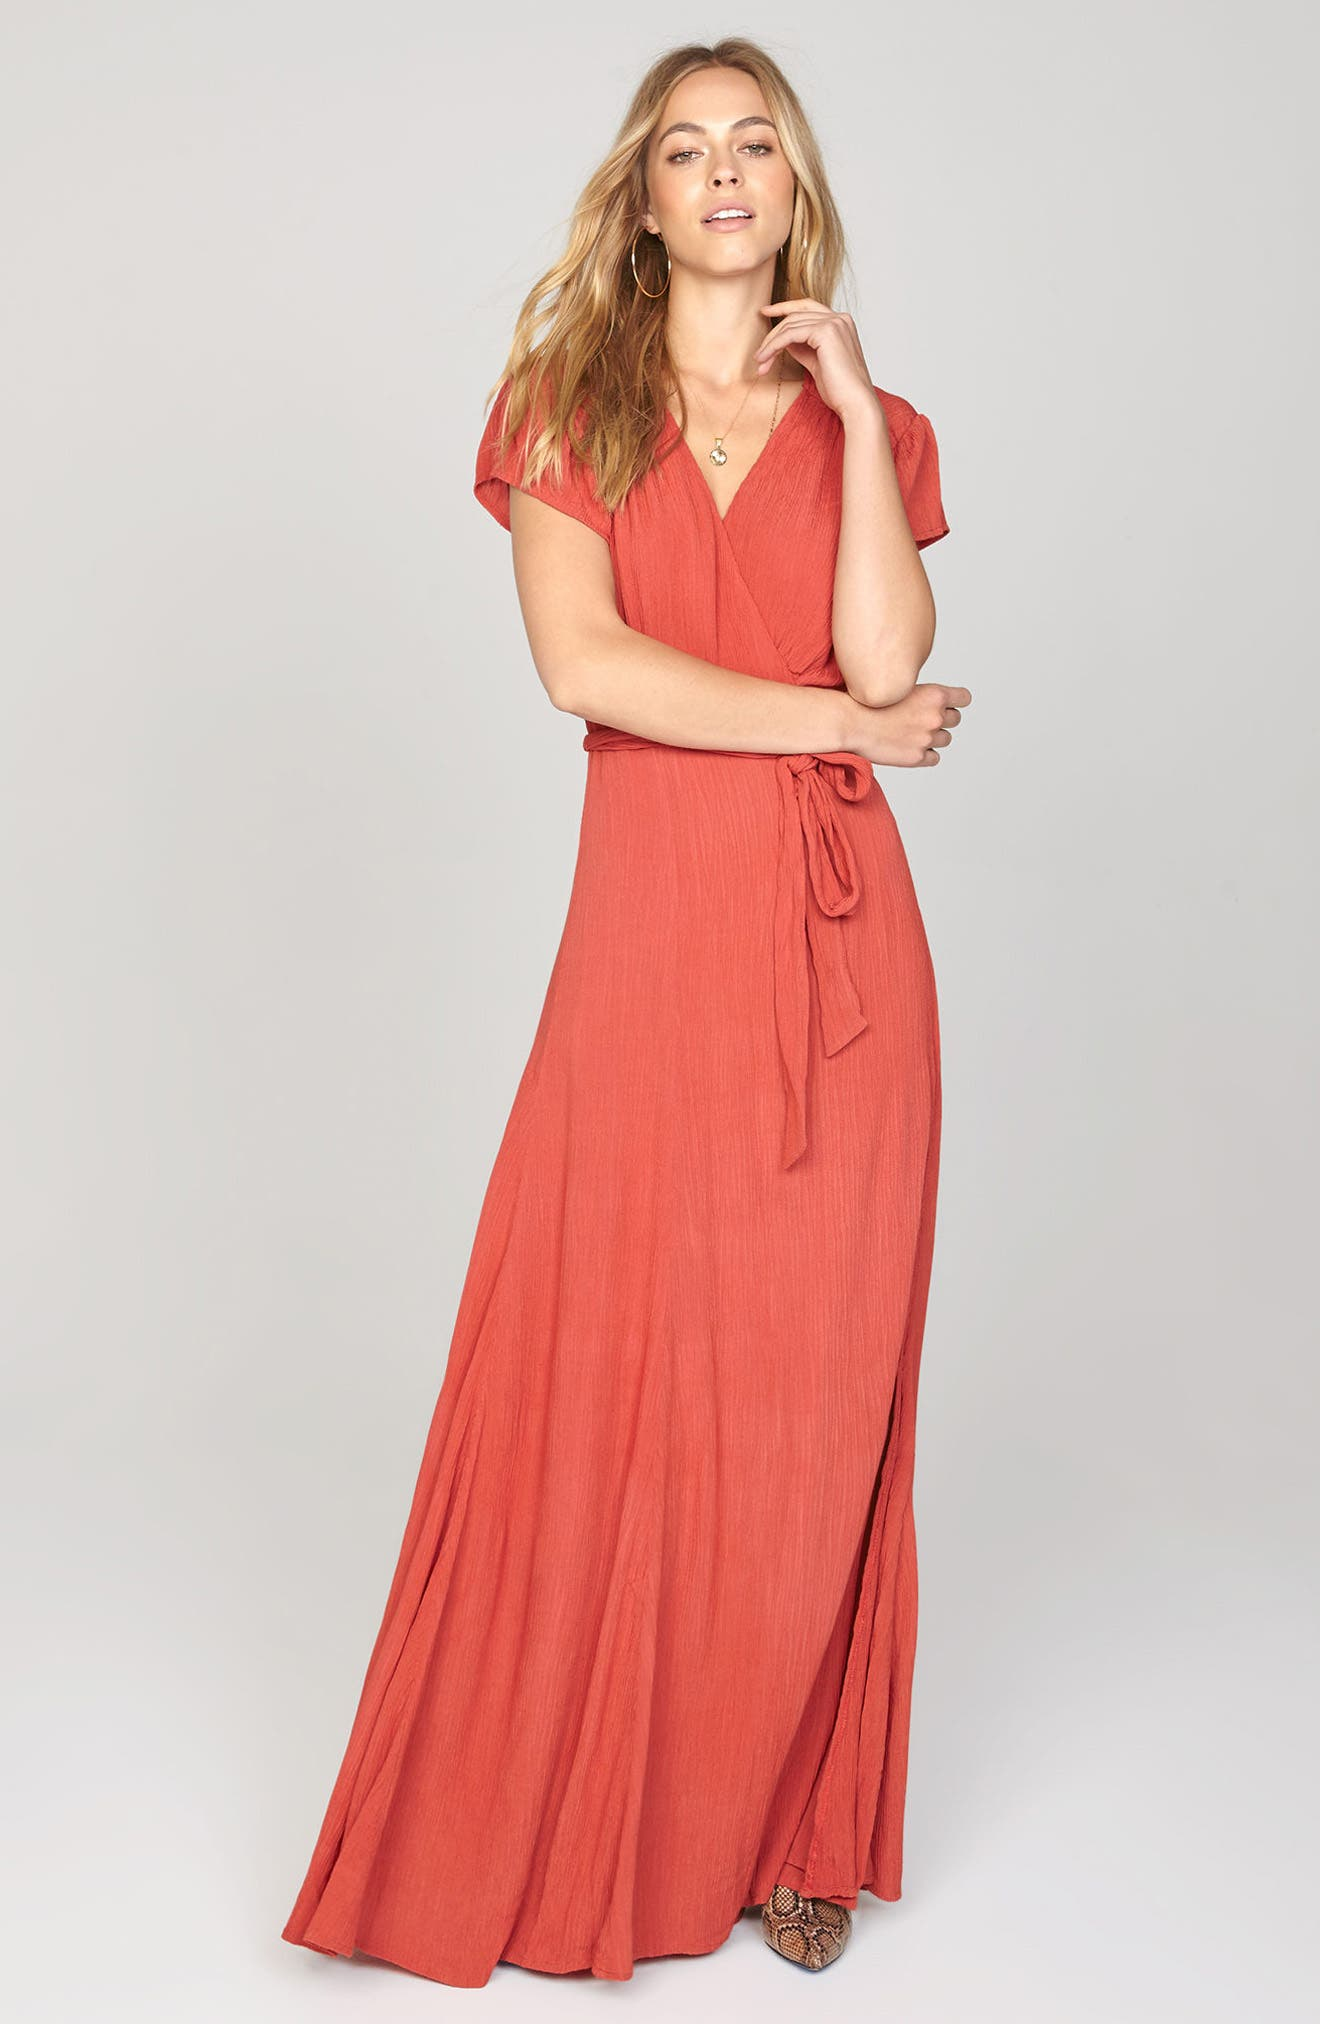 Beachscape Maxi Wrap Dress,                             Alternate thumbnail 2, color,                             Salsa Red